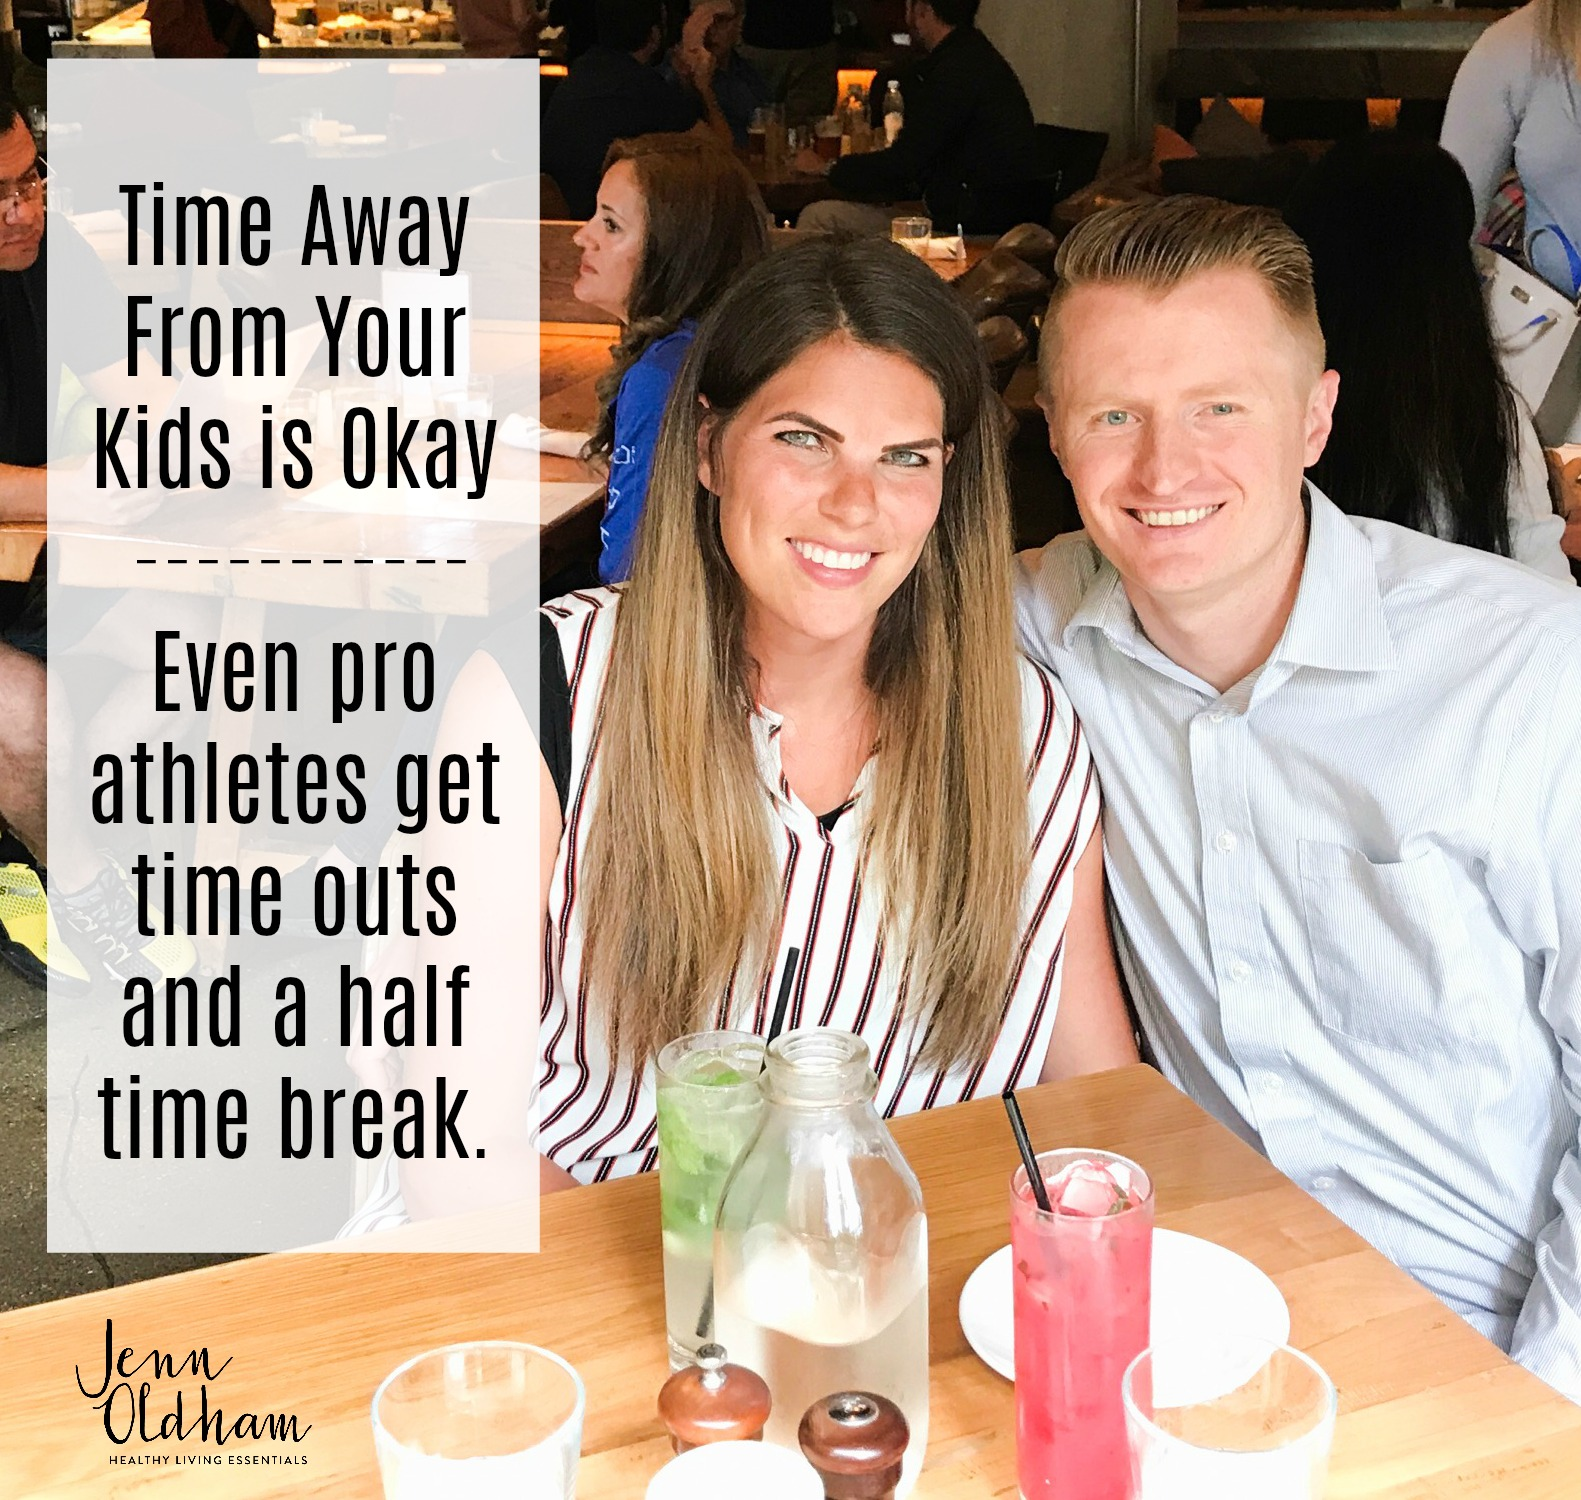 Taking time away from your kids IS OKAY.